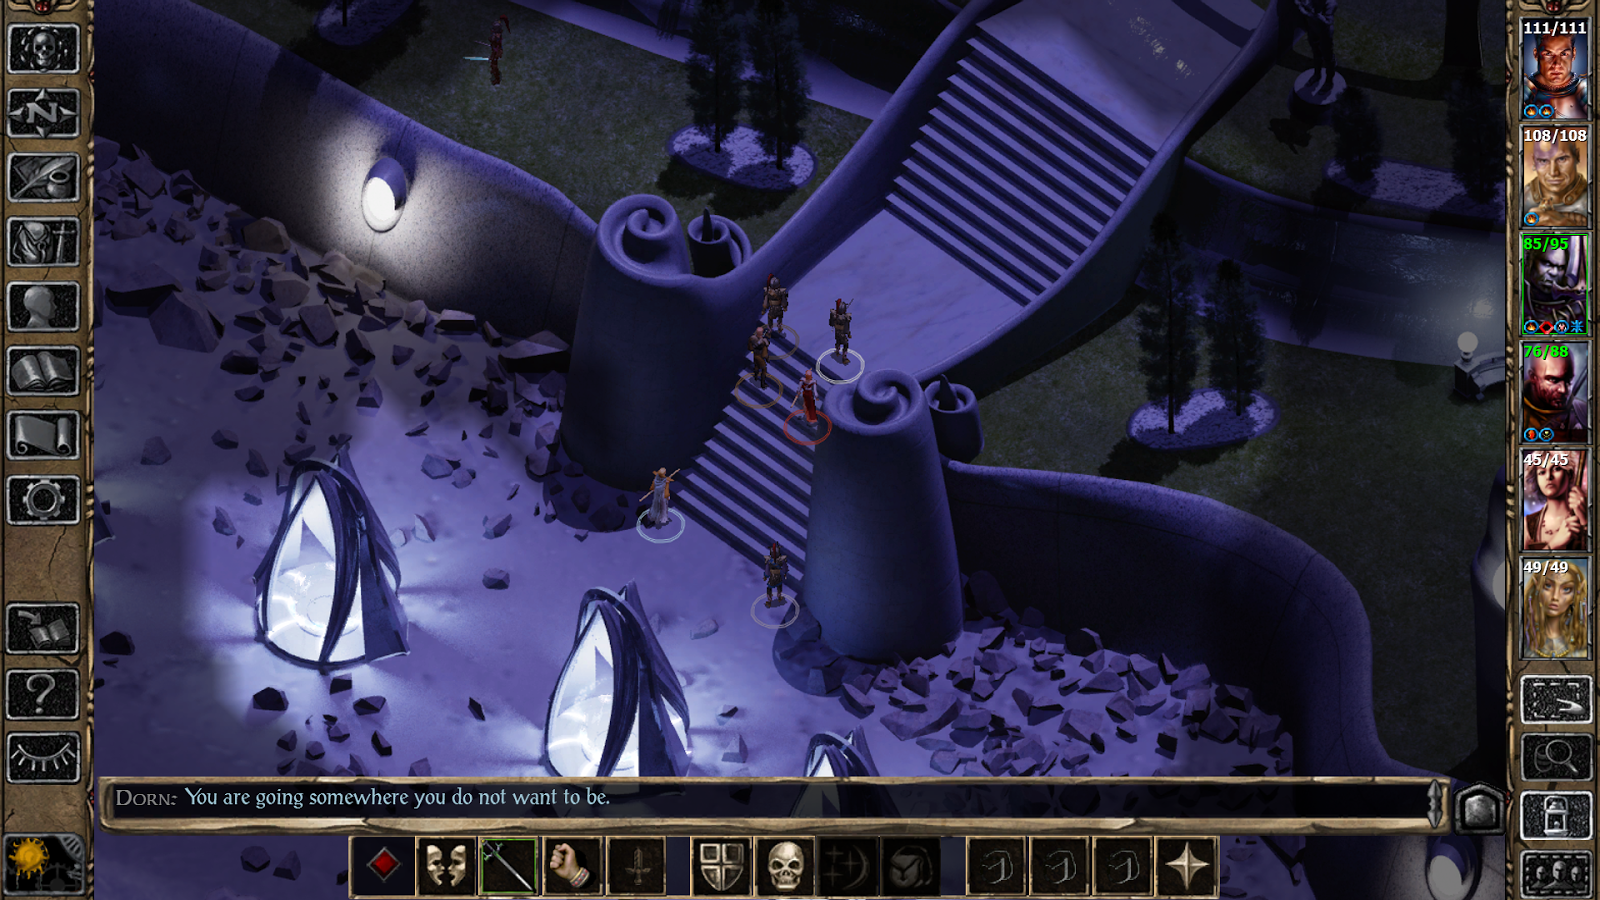 Baldur's Gate II Screenshot 6